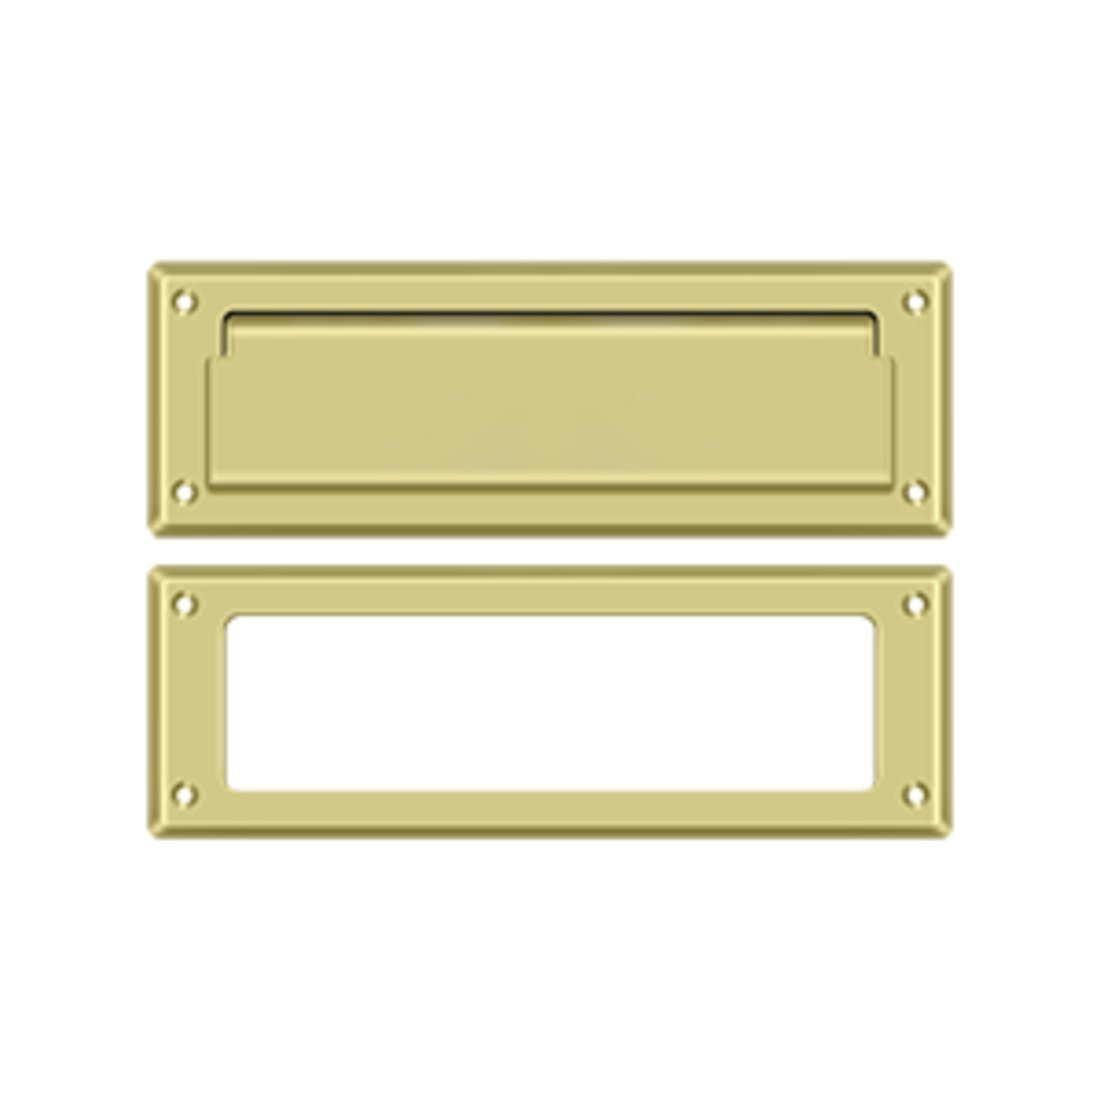 Deltana MS626U3 8 7/8-Inch Mail Slot with Solid Brass Interior Frame